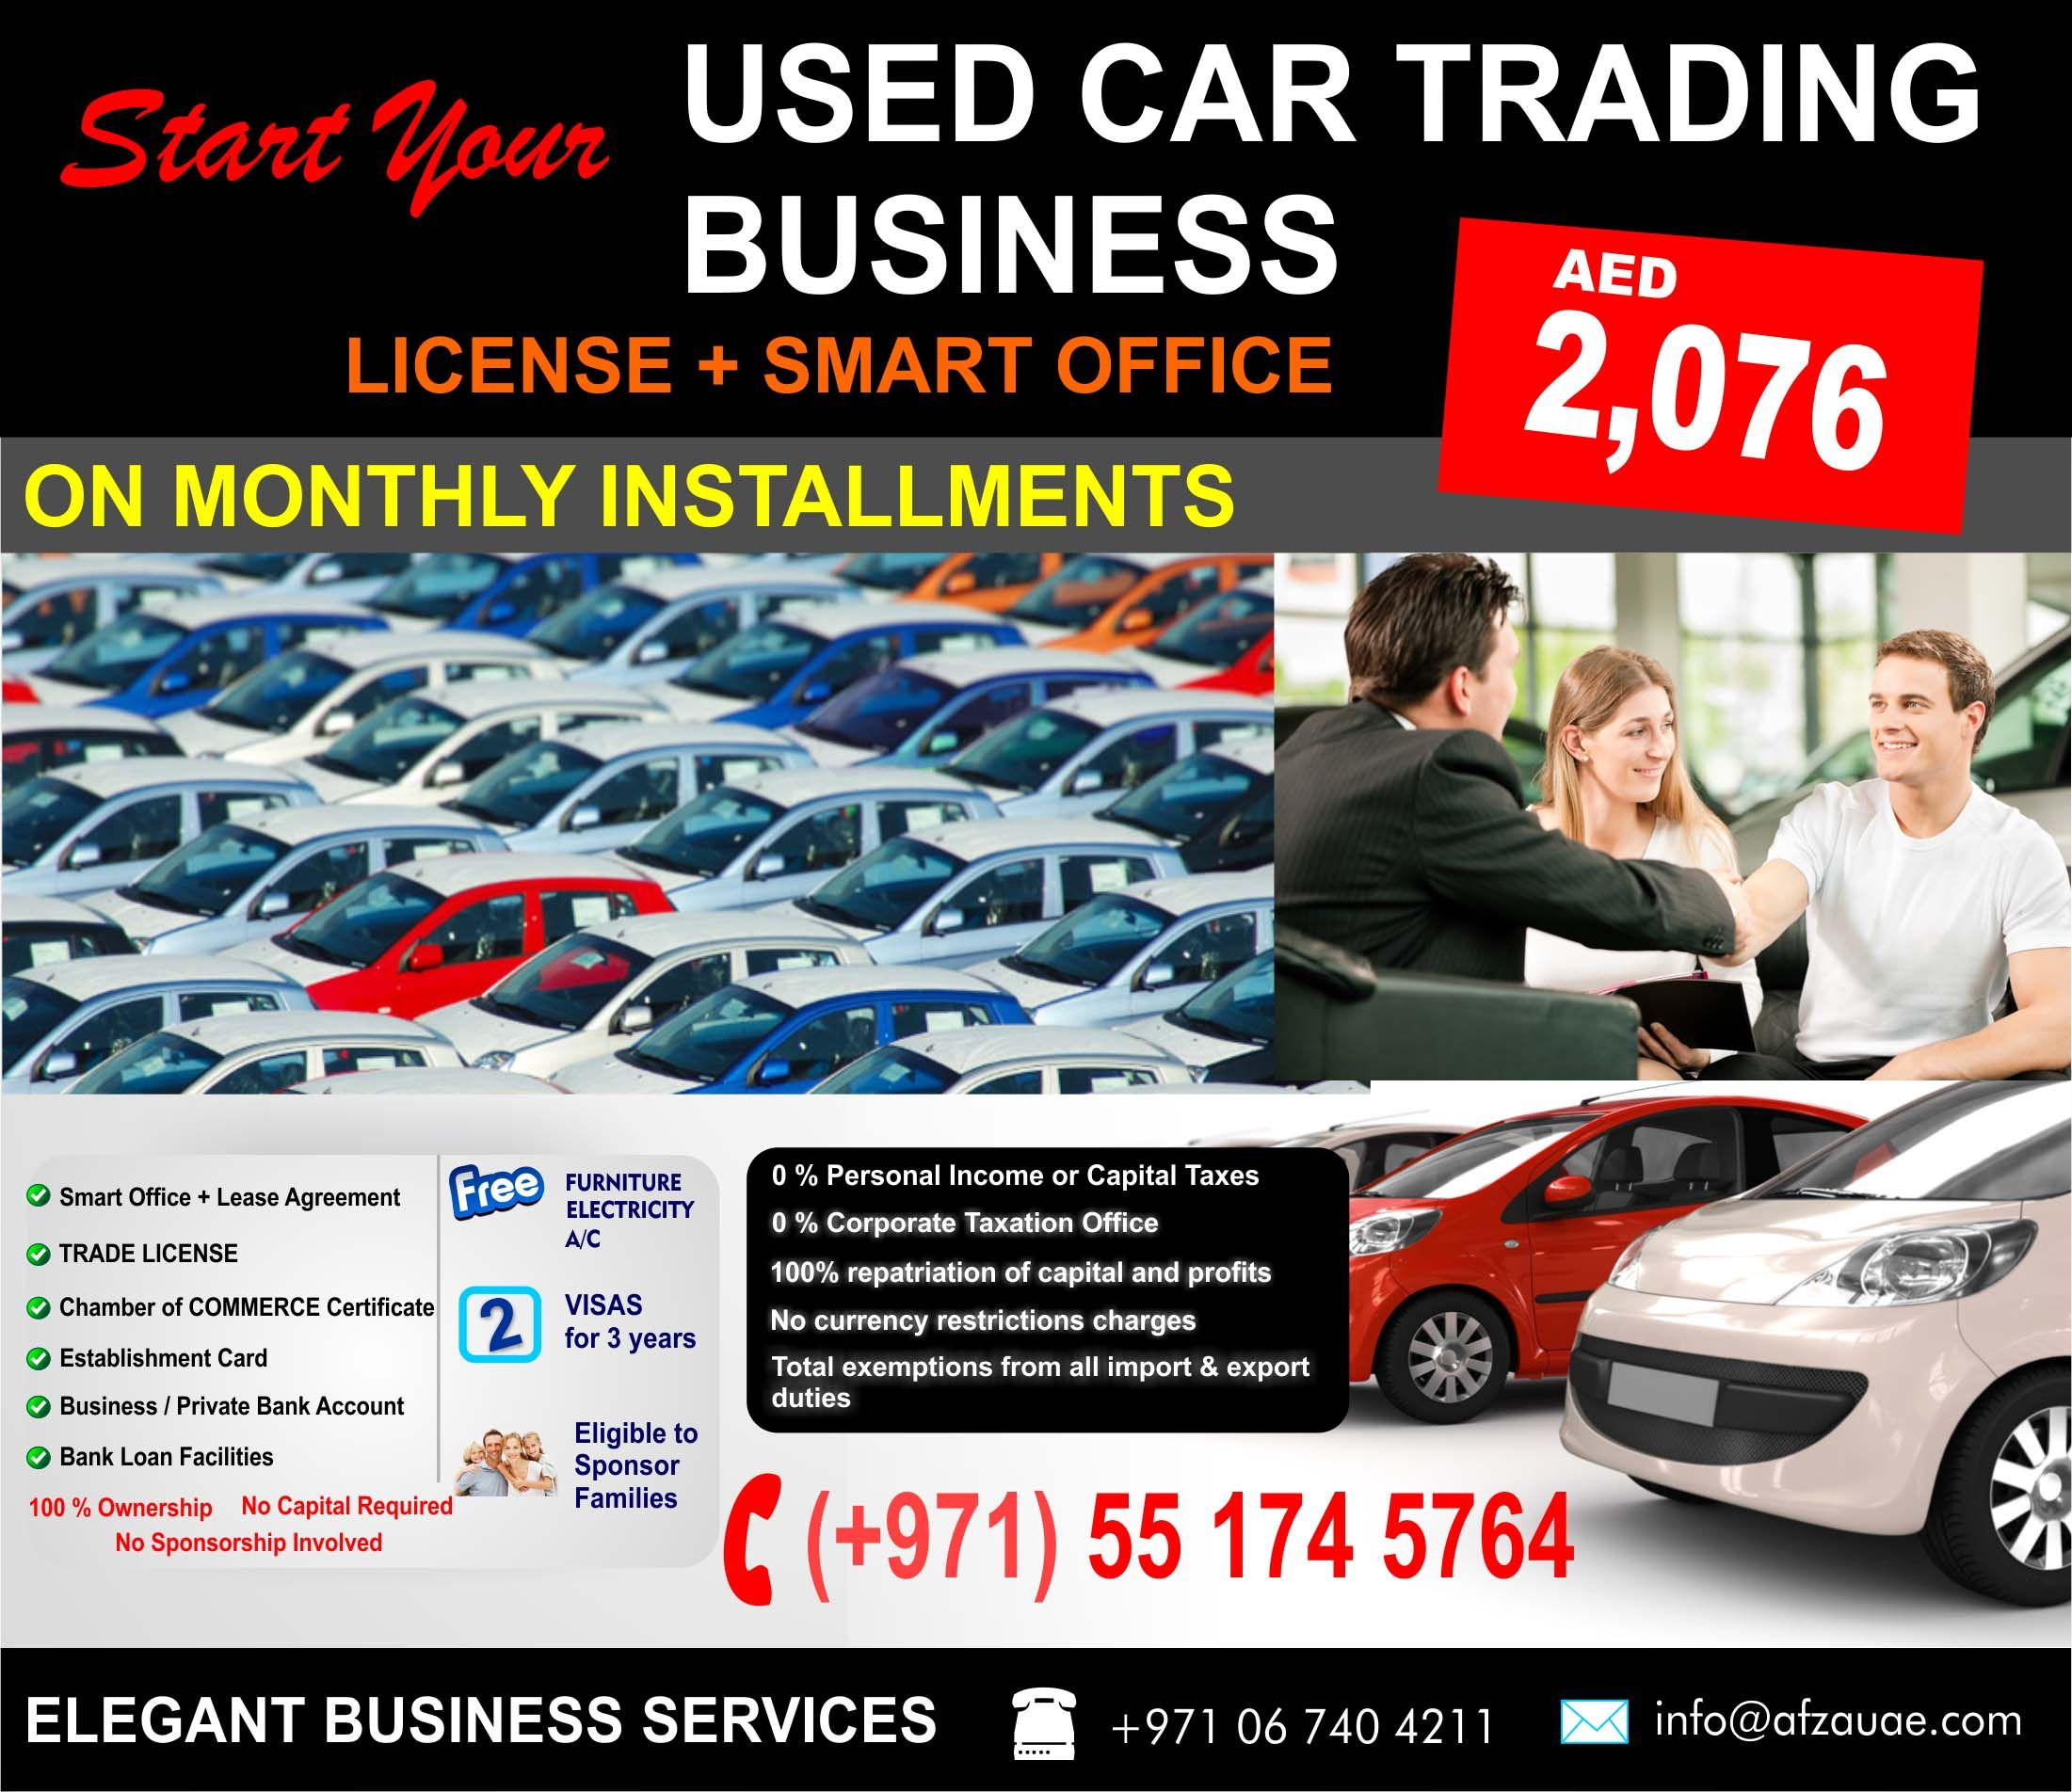 Start your new business used car service license in uae on monthly installments 2 076 aed per month with smart office trade license lease agreement